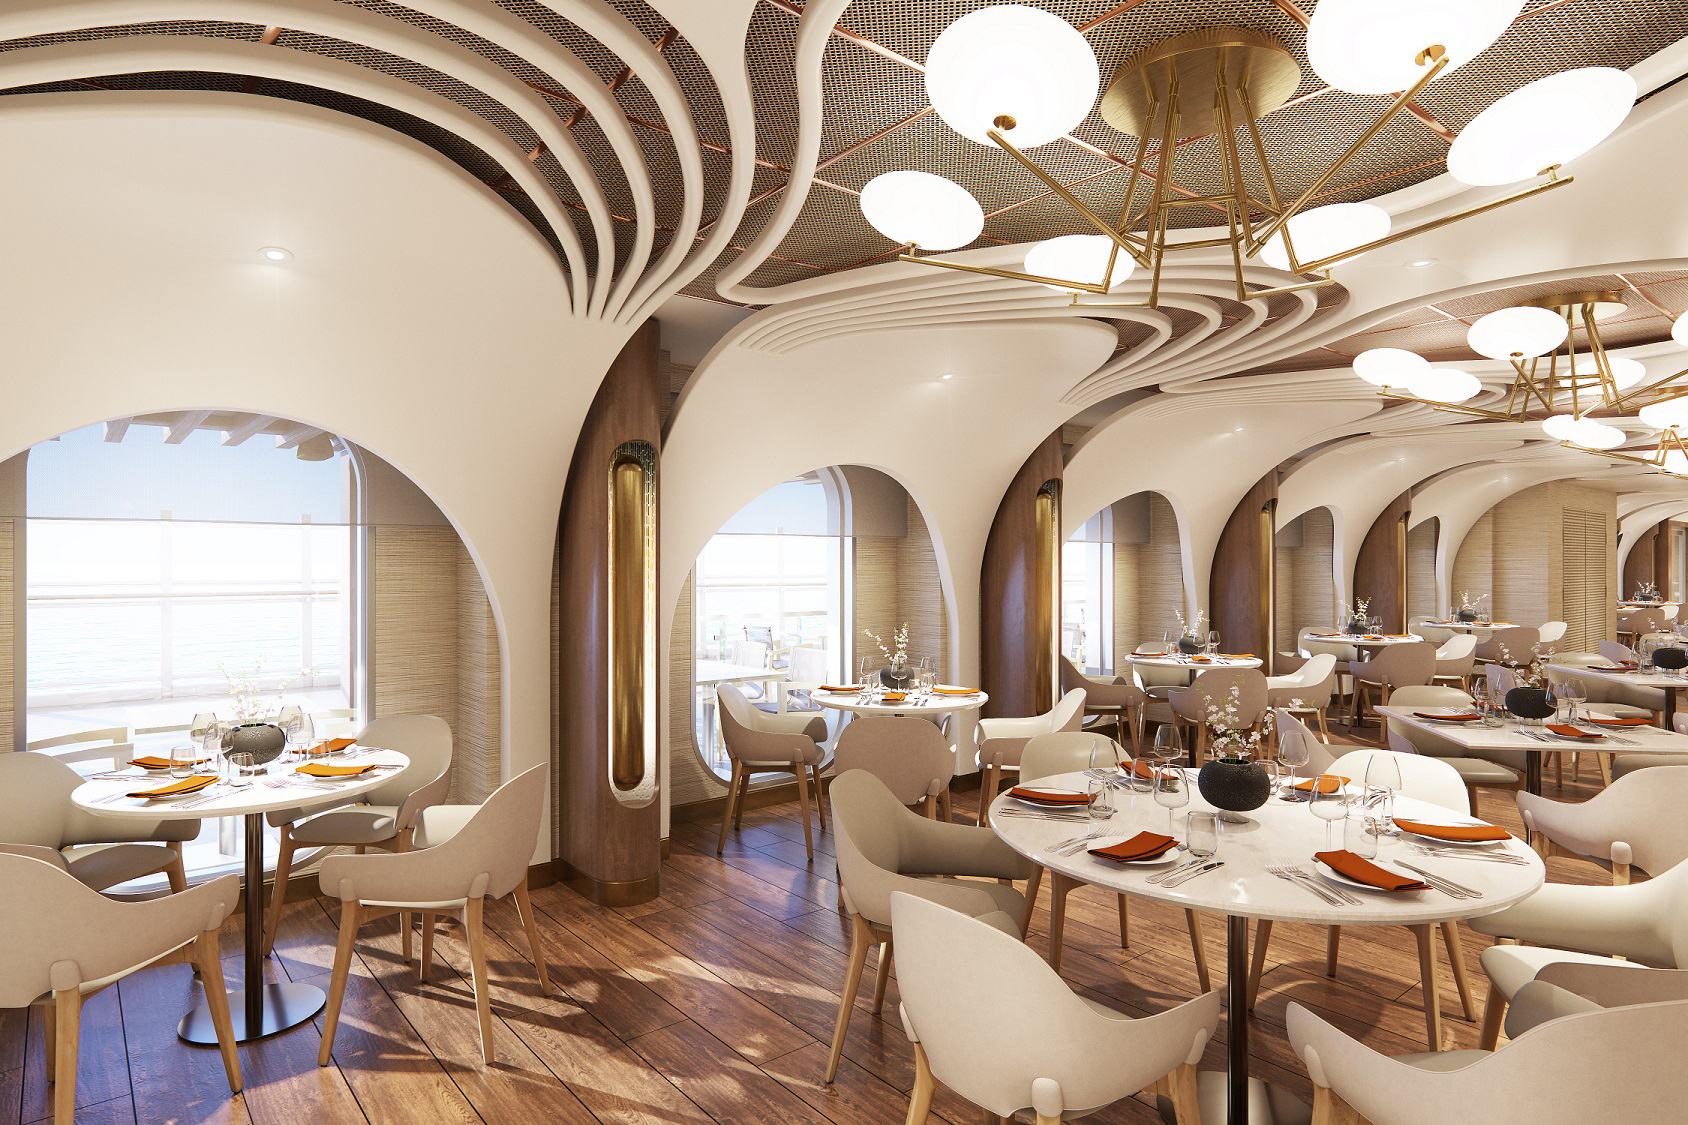 Onda by Scarpetta, the Italian restaurant on board Norwegian Prima, will offer expansive indoor and outdoor seating and will showcase the rich and bold flavors for which the modern Italian land-based, award-winning Scarpetta restaurants are recognized for.